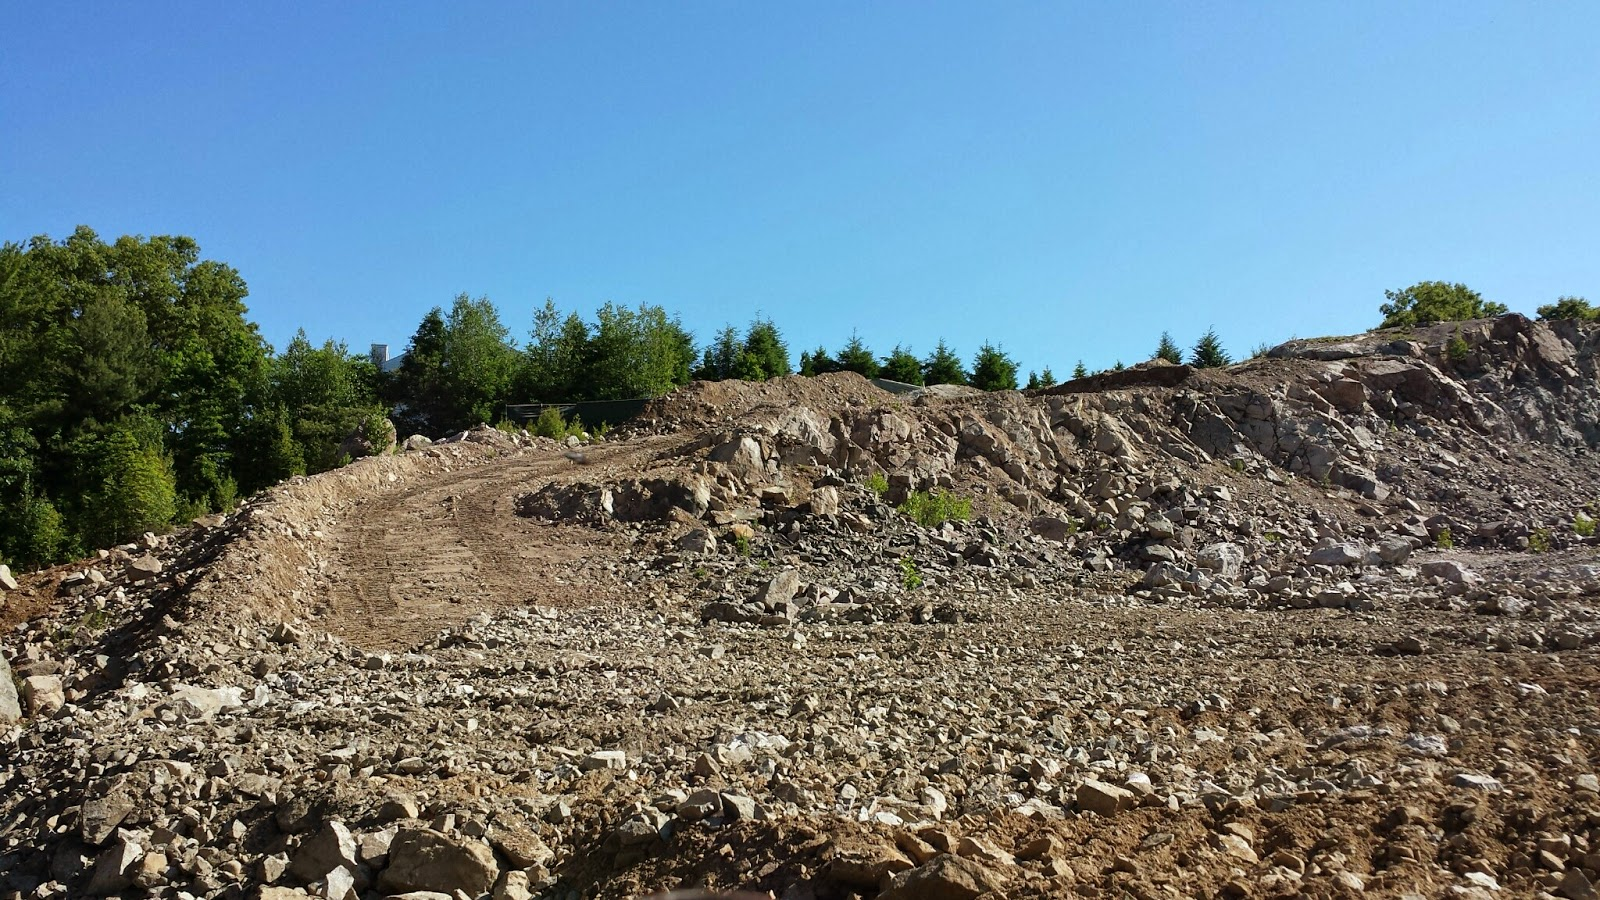 working road added to top of 'rockpile'